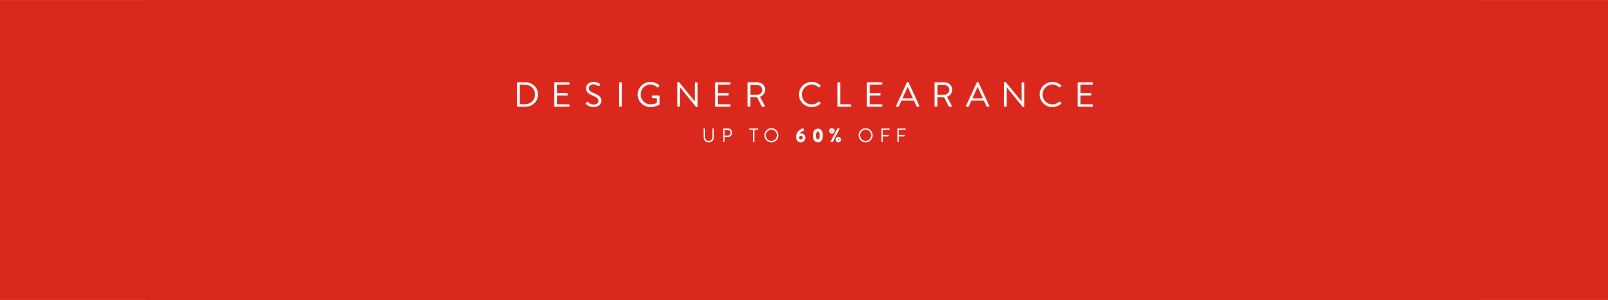 Designer Clearance: up to 60% off.